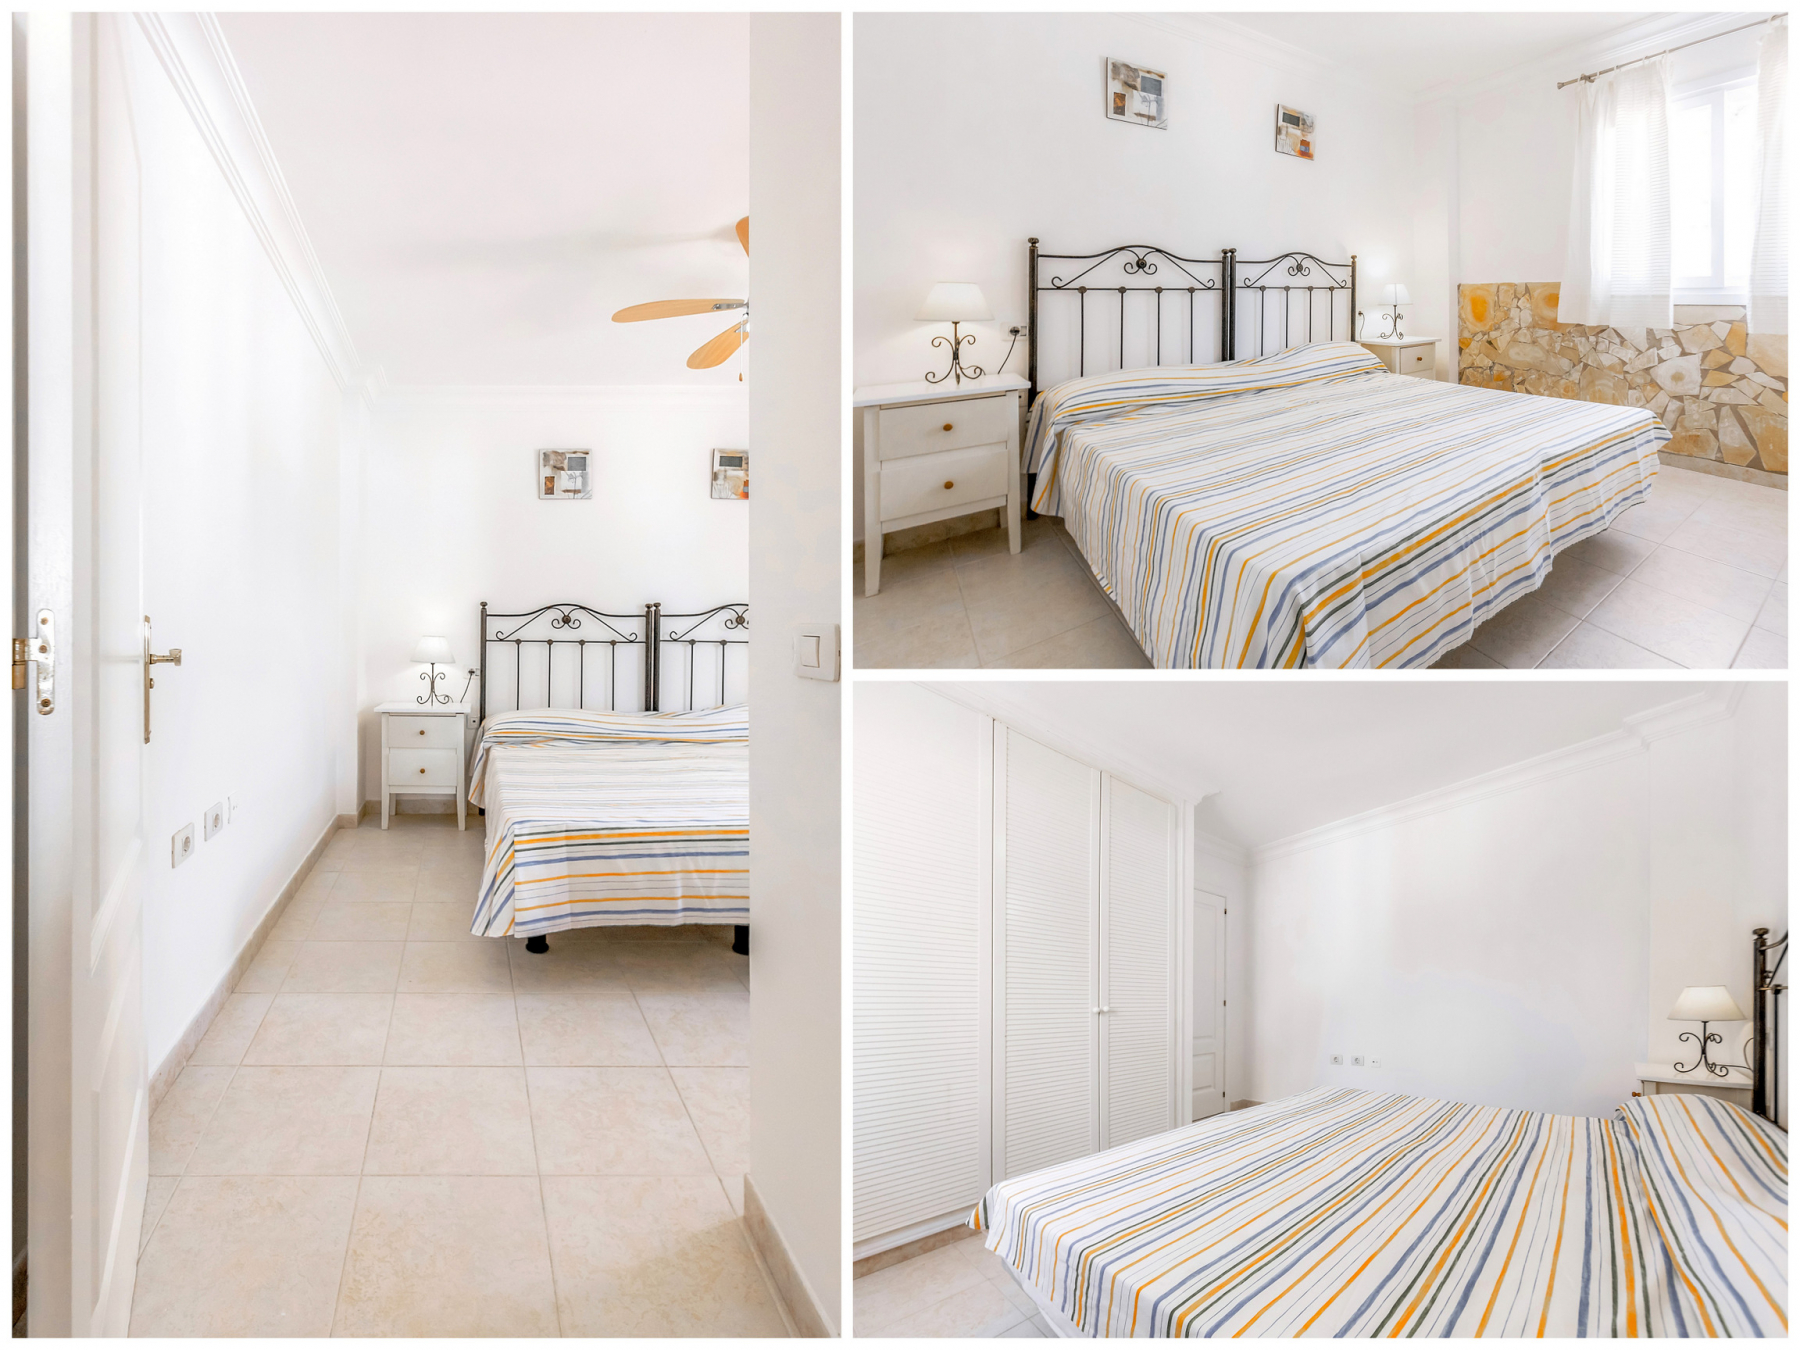 Properties for Sale in Tenerife, Canary Islands, Spain | SylkWayStar Real Estate. EXCLUSIVE OFFER. Image-26356